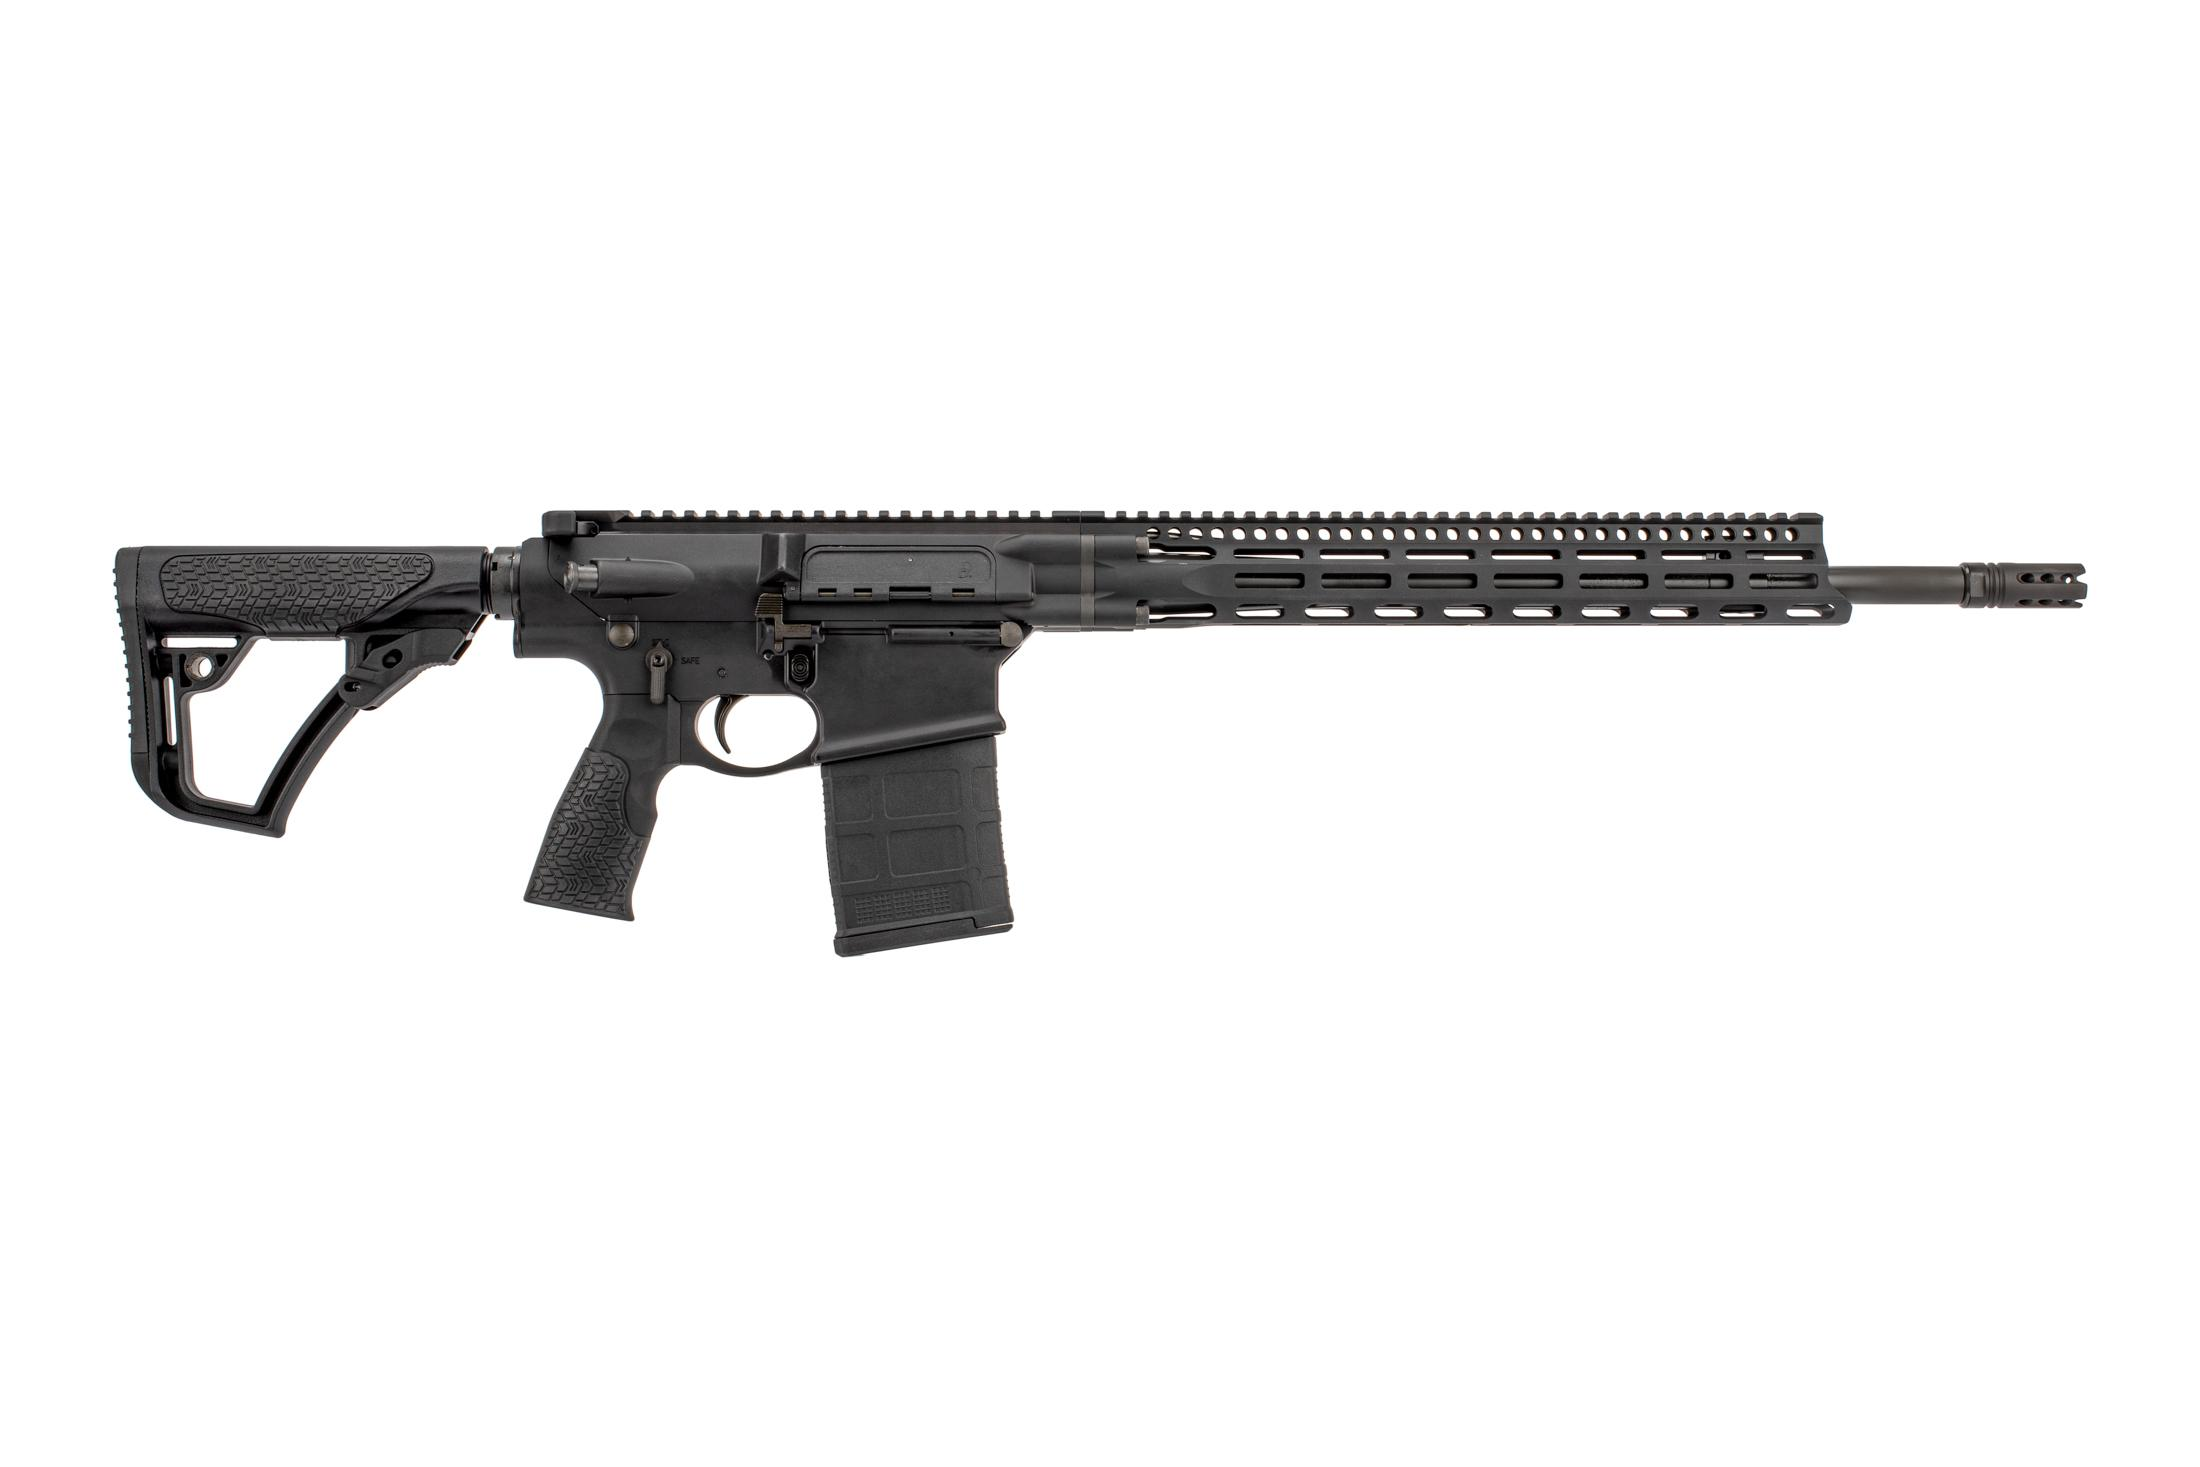 DD5v4 AR10 complete rifle chambered in 6.5 Creedmoor